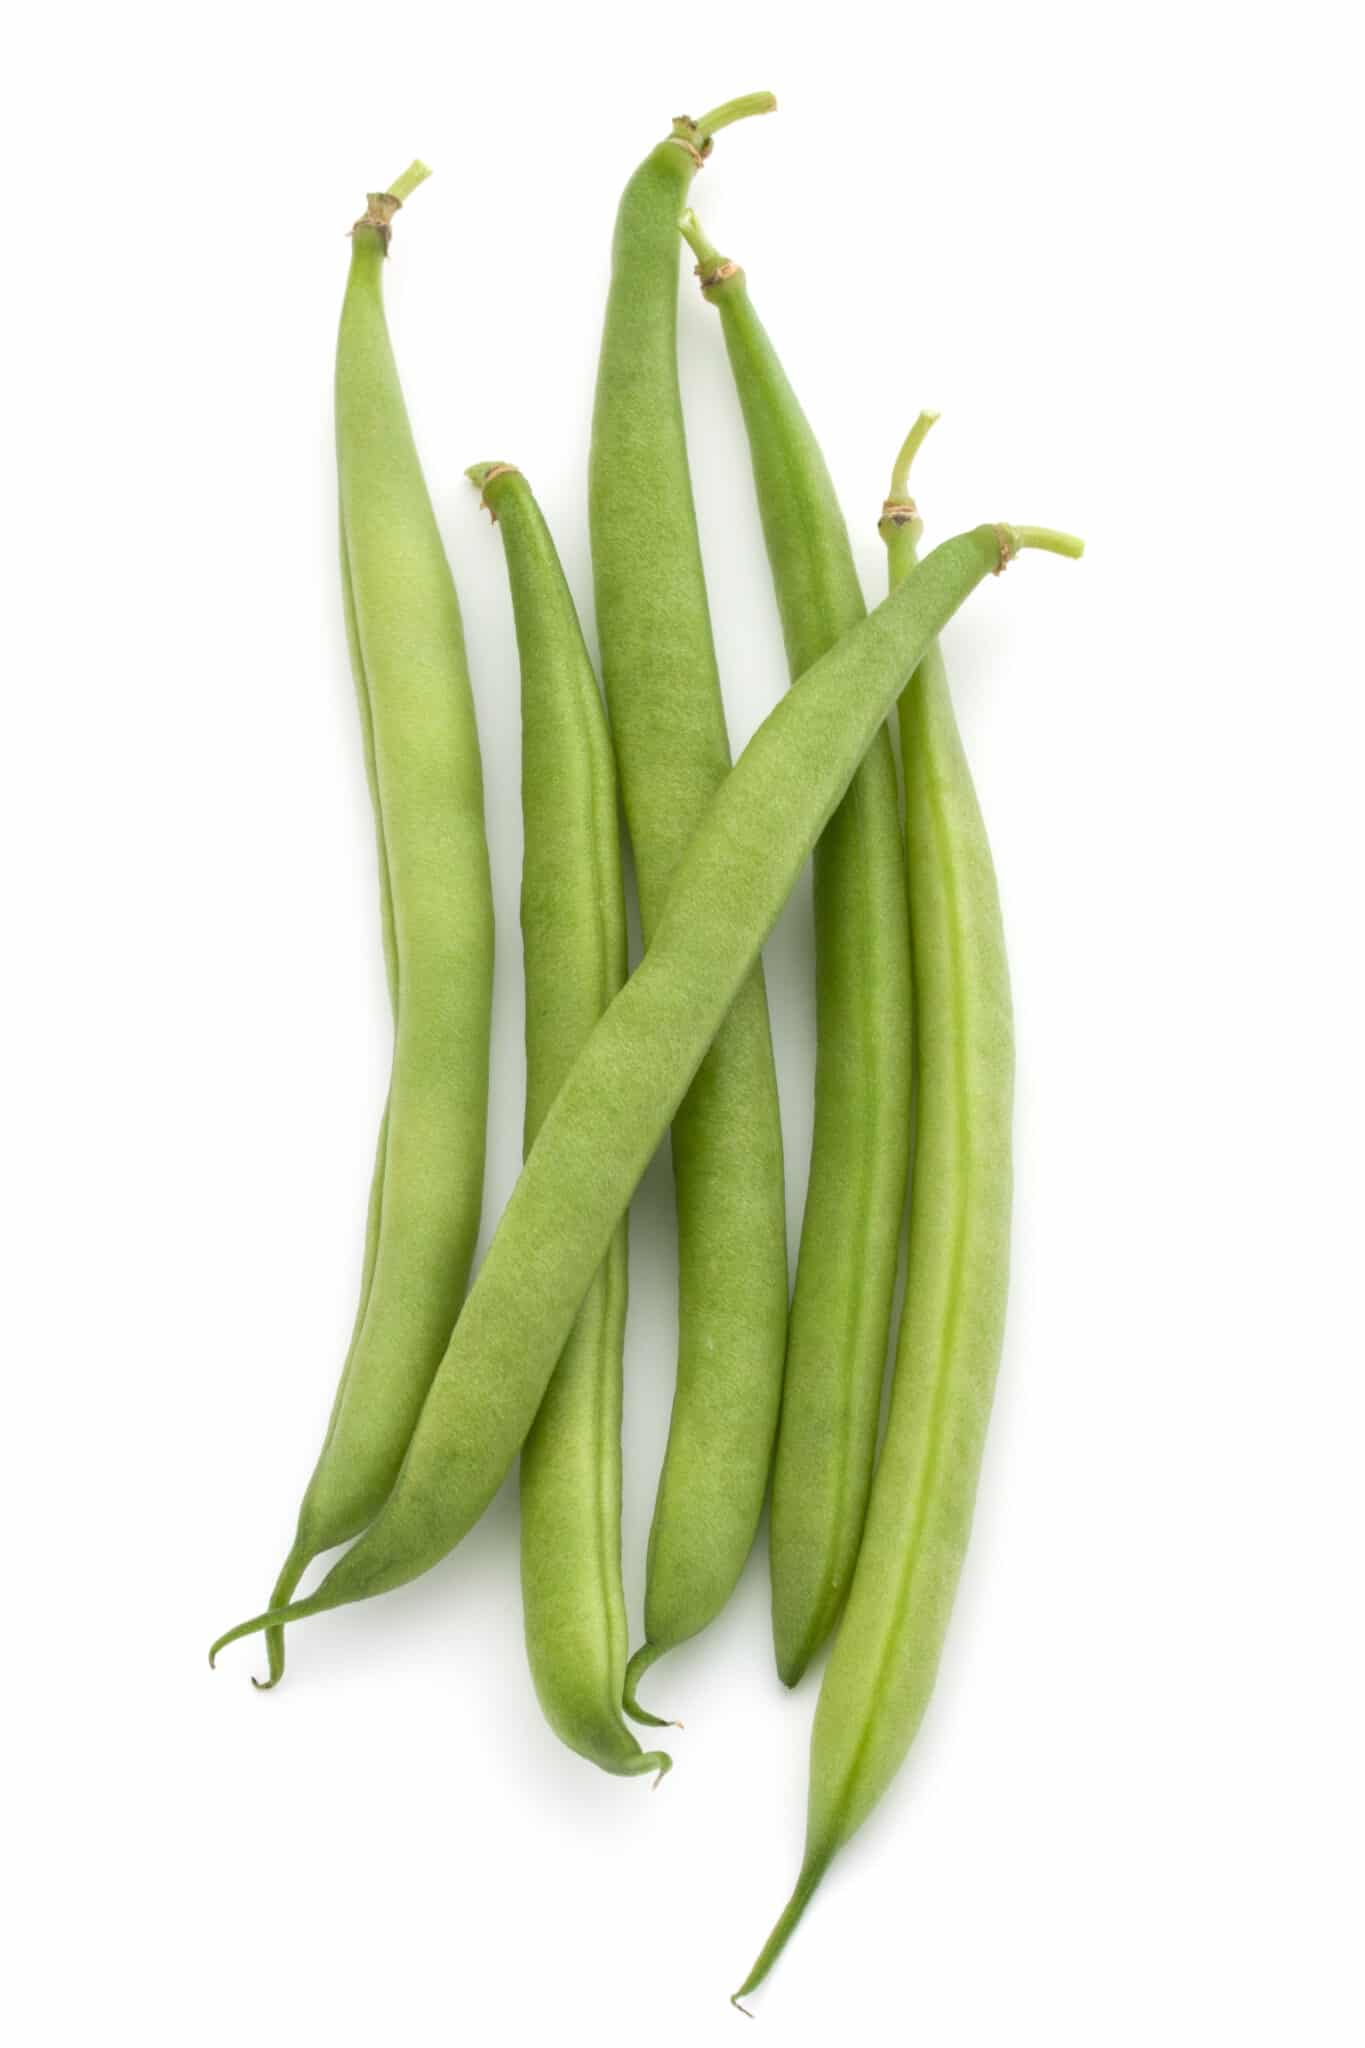 Plump ripe green beans against a bright white background.